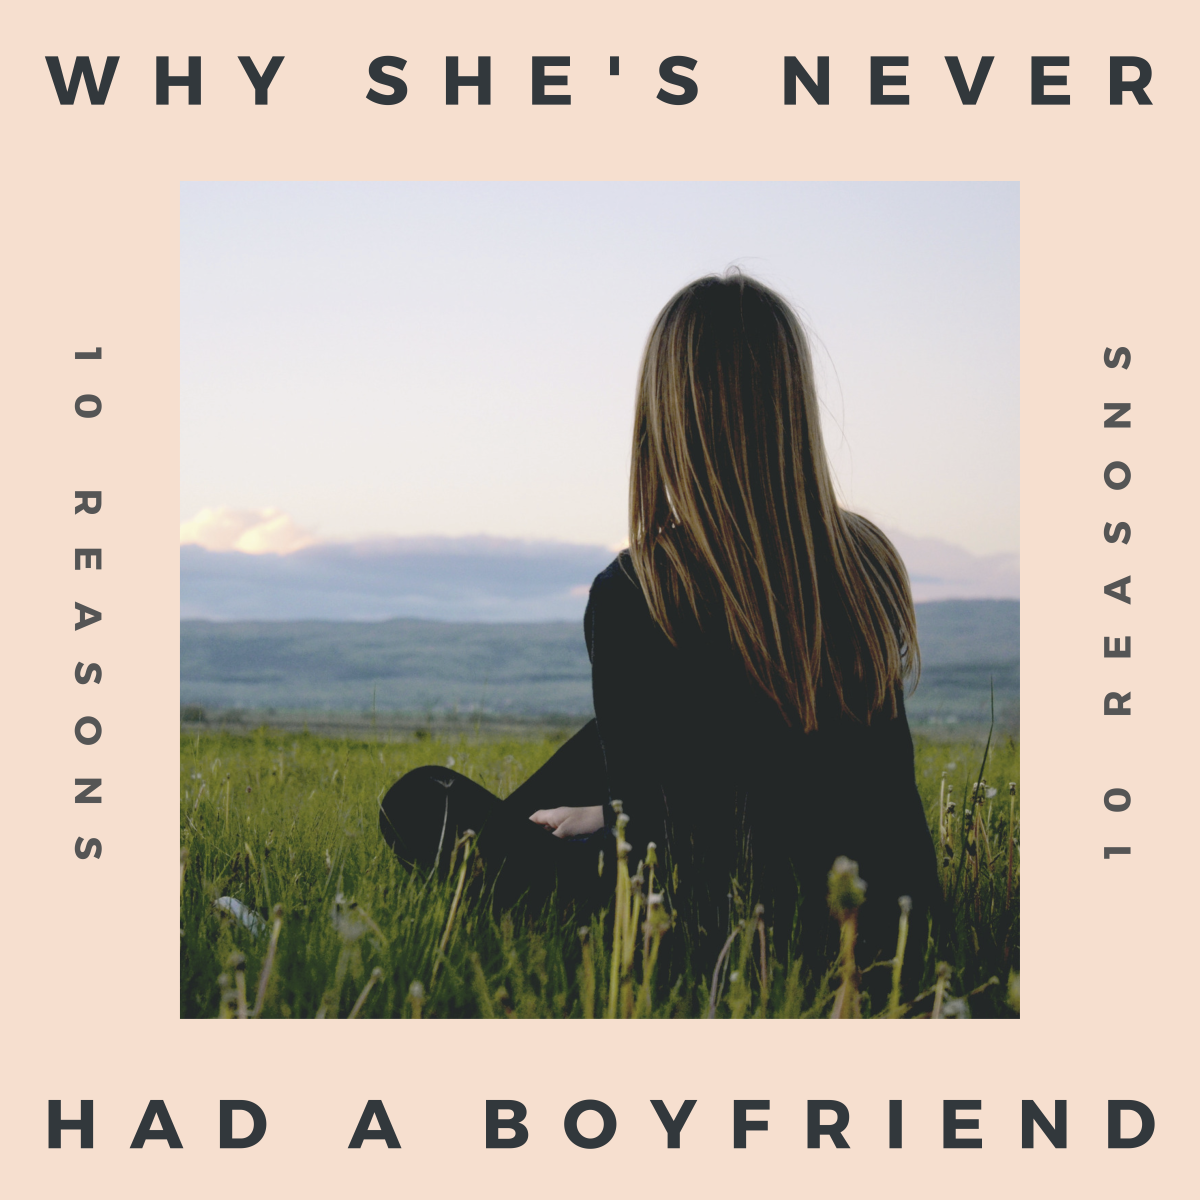 10 Reasons Why She's Never Had a Boyfriend